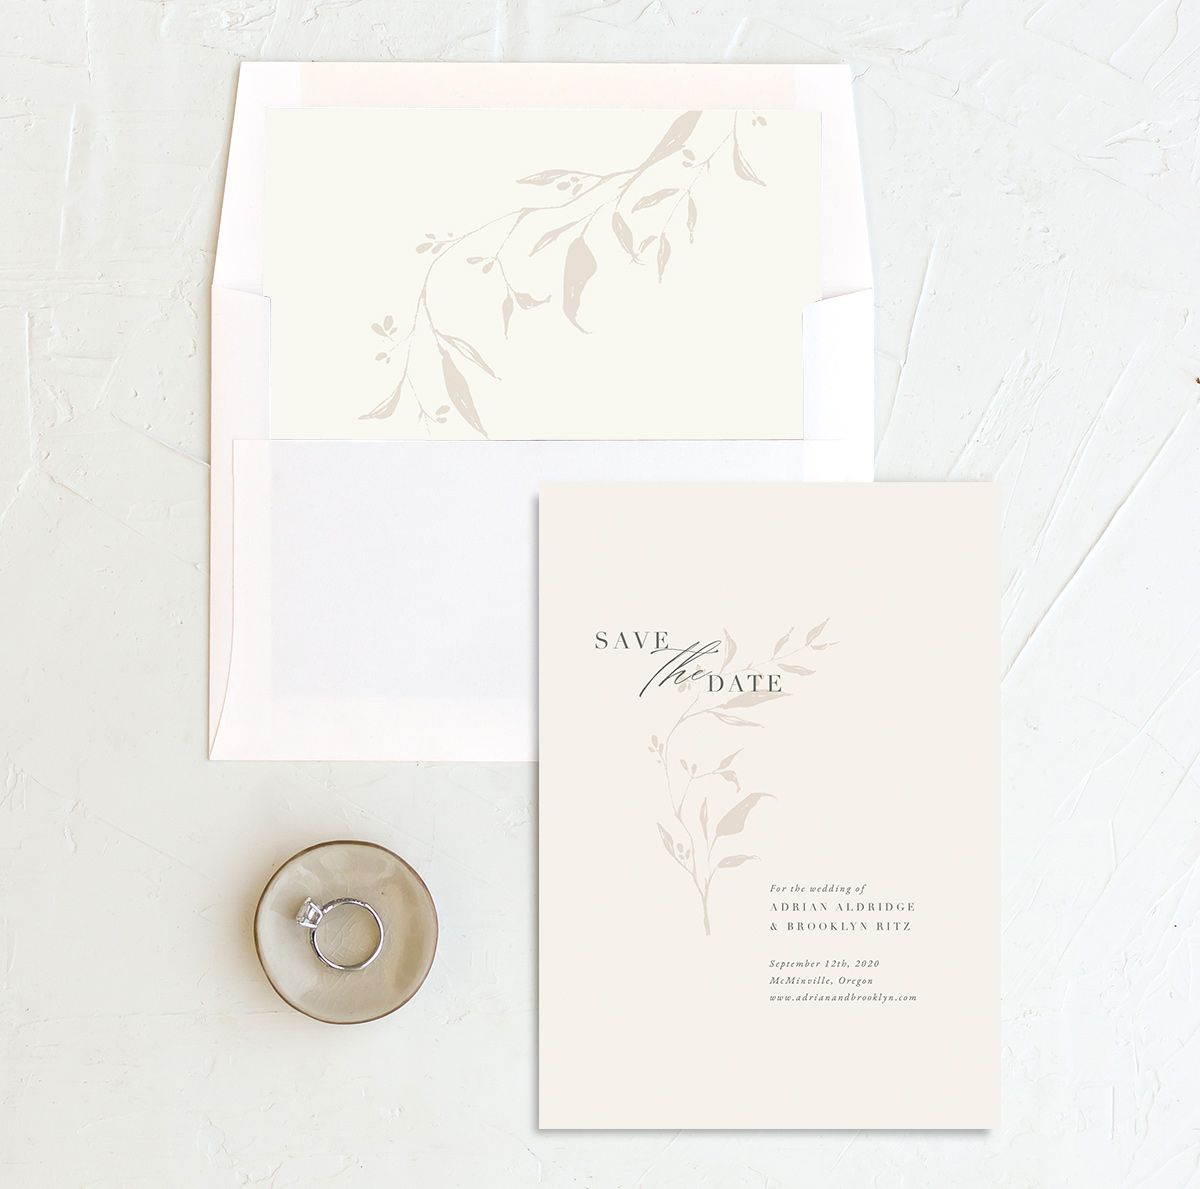 Rustic Minimal Save the Date in cream